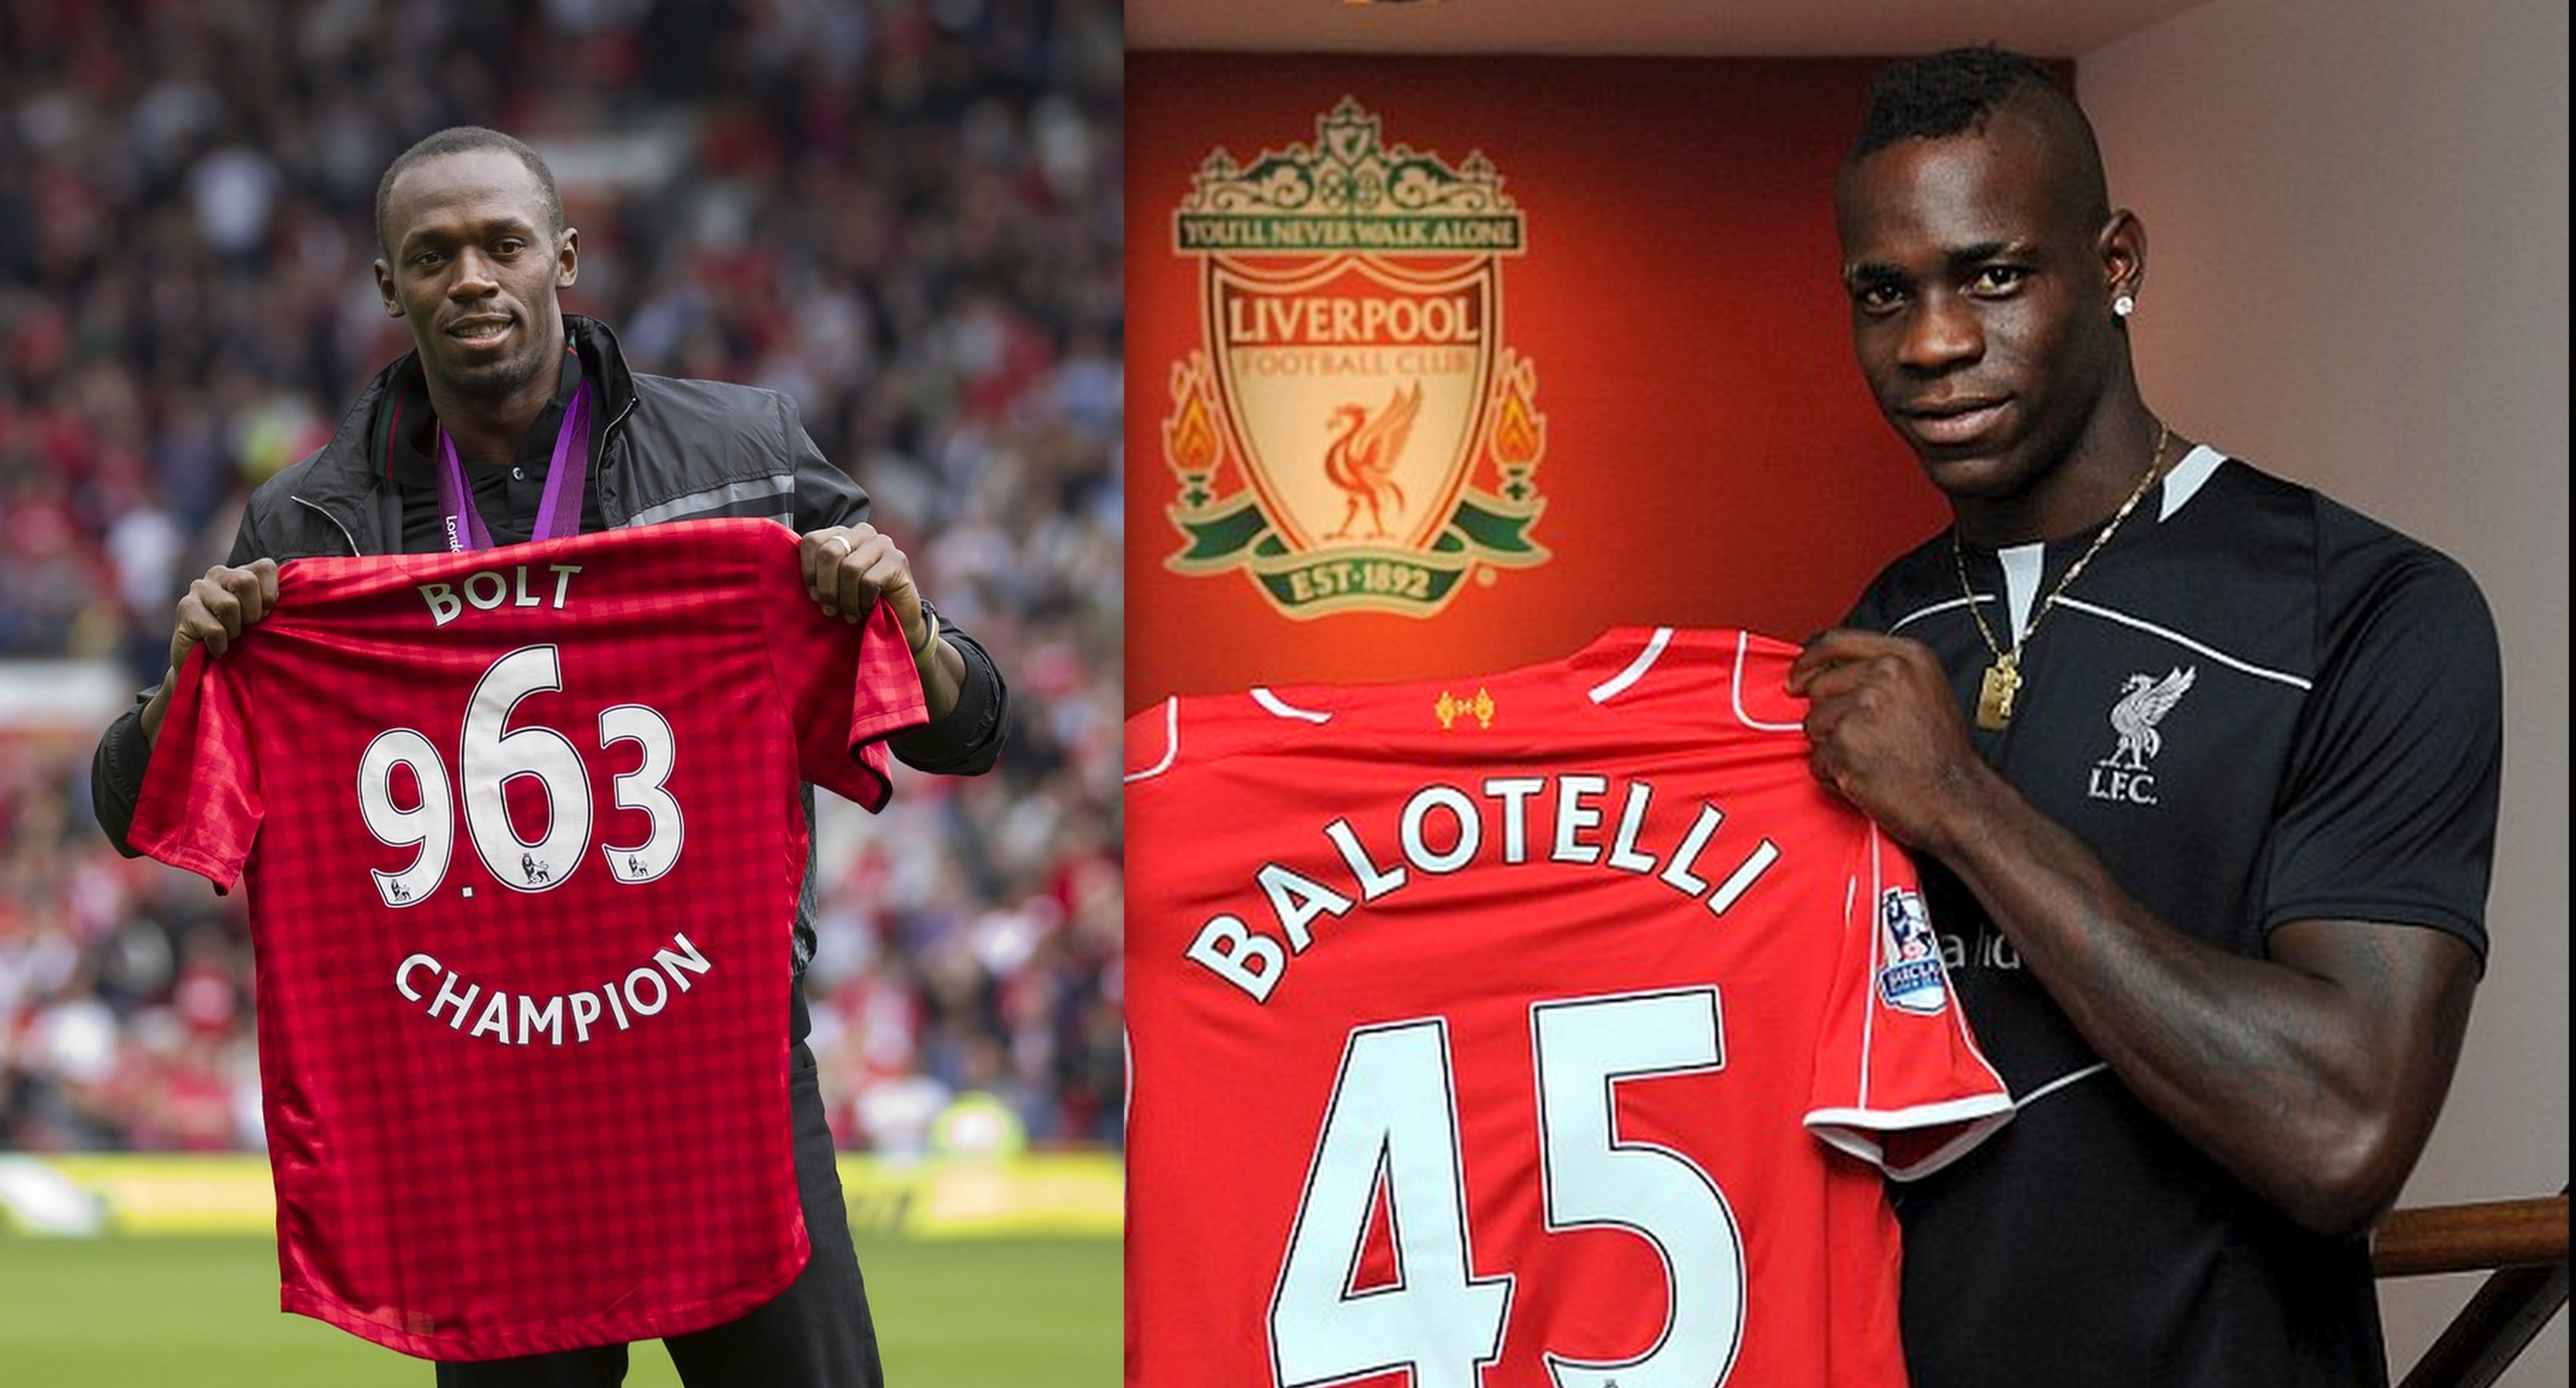 100% authentic 0db9c 0b2fa Manchester United fan Usain Bolt urged Mario Balotelli to ...